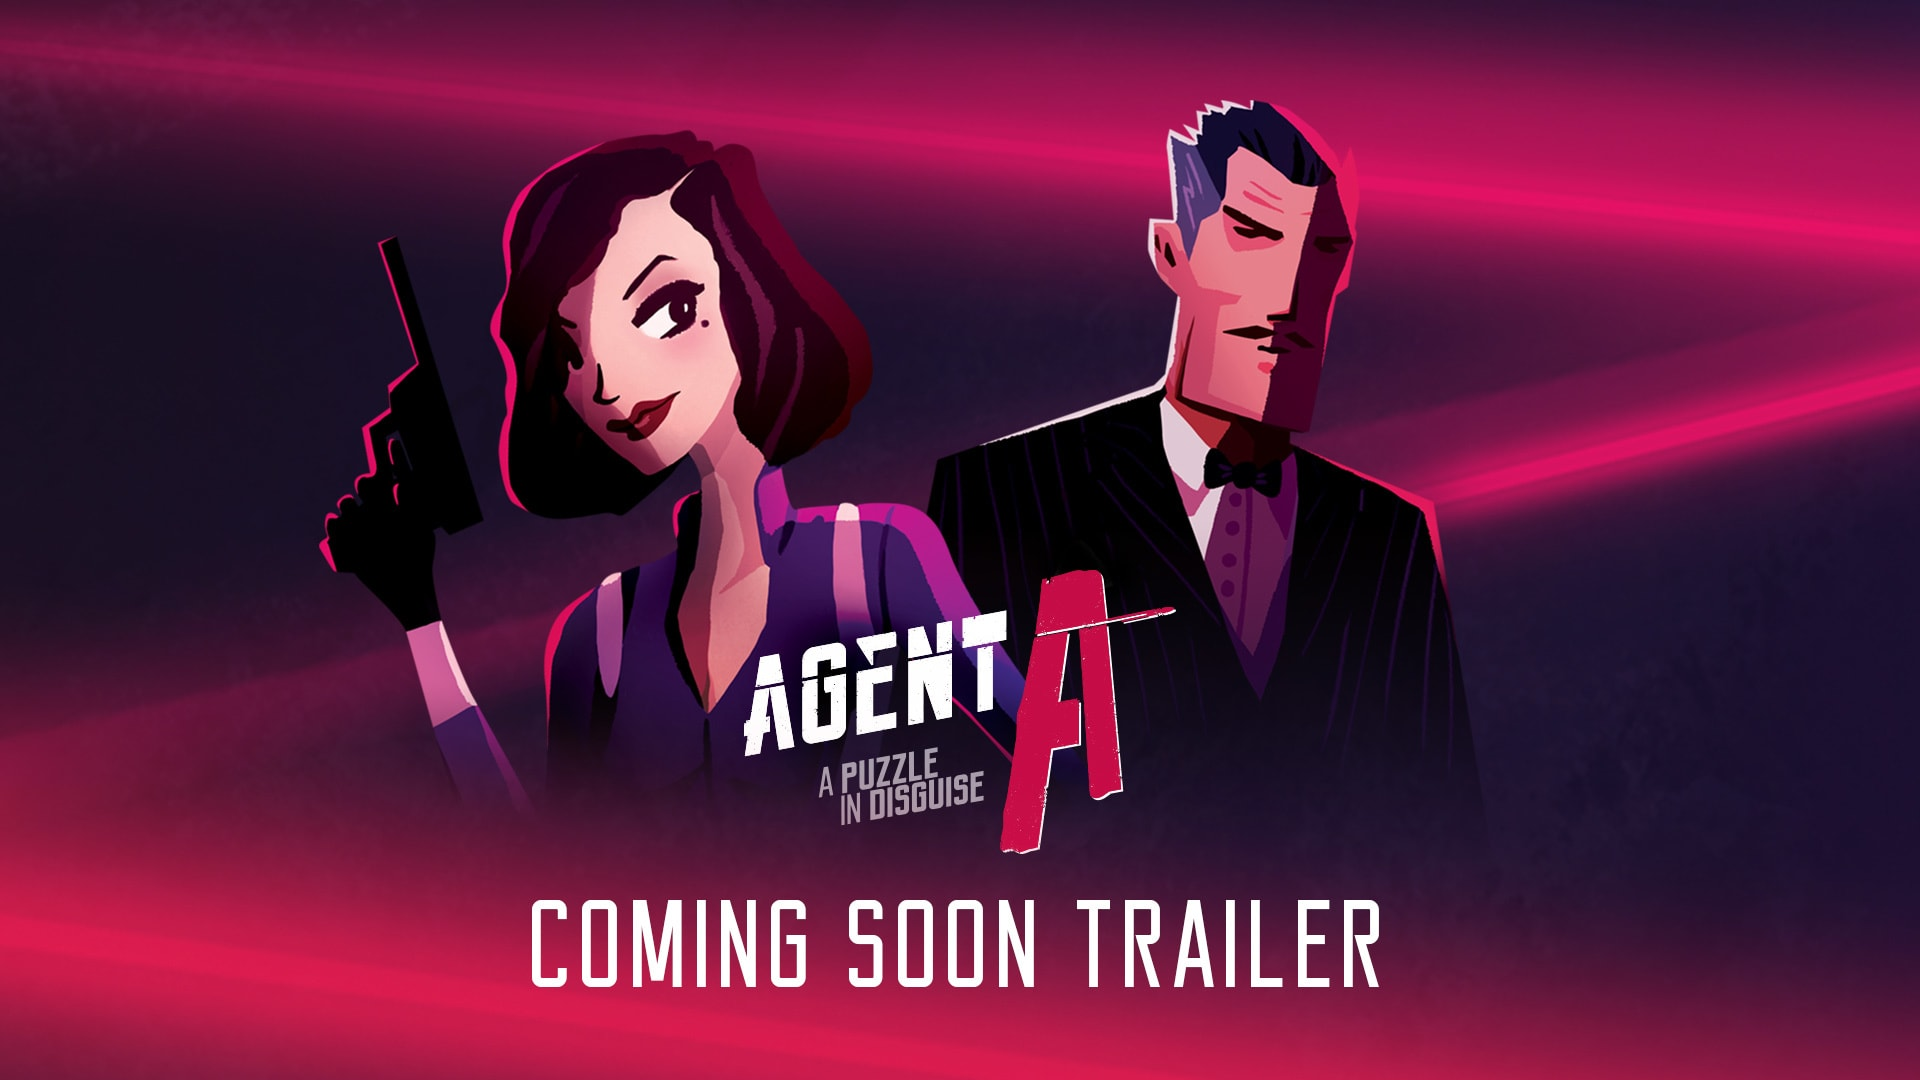 Agent A: A Puzzle in Disguise последняя глава уже скоро